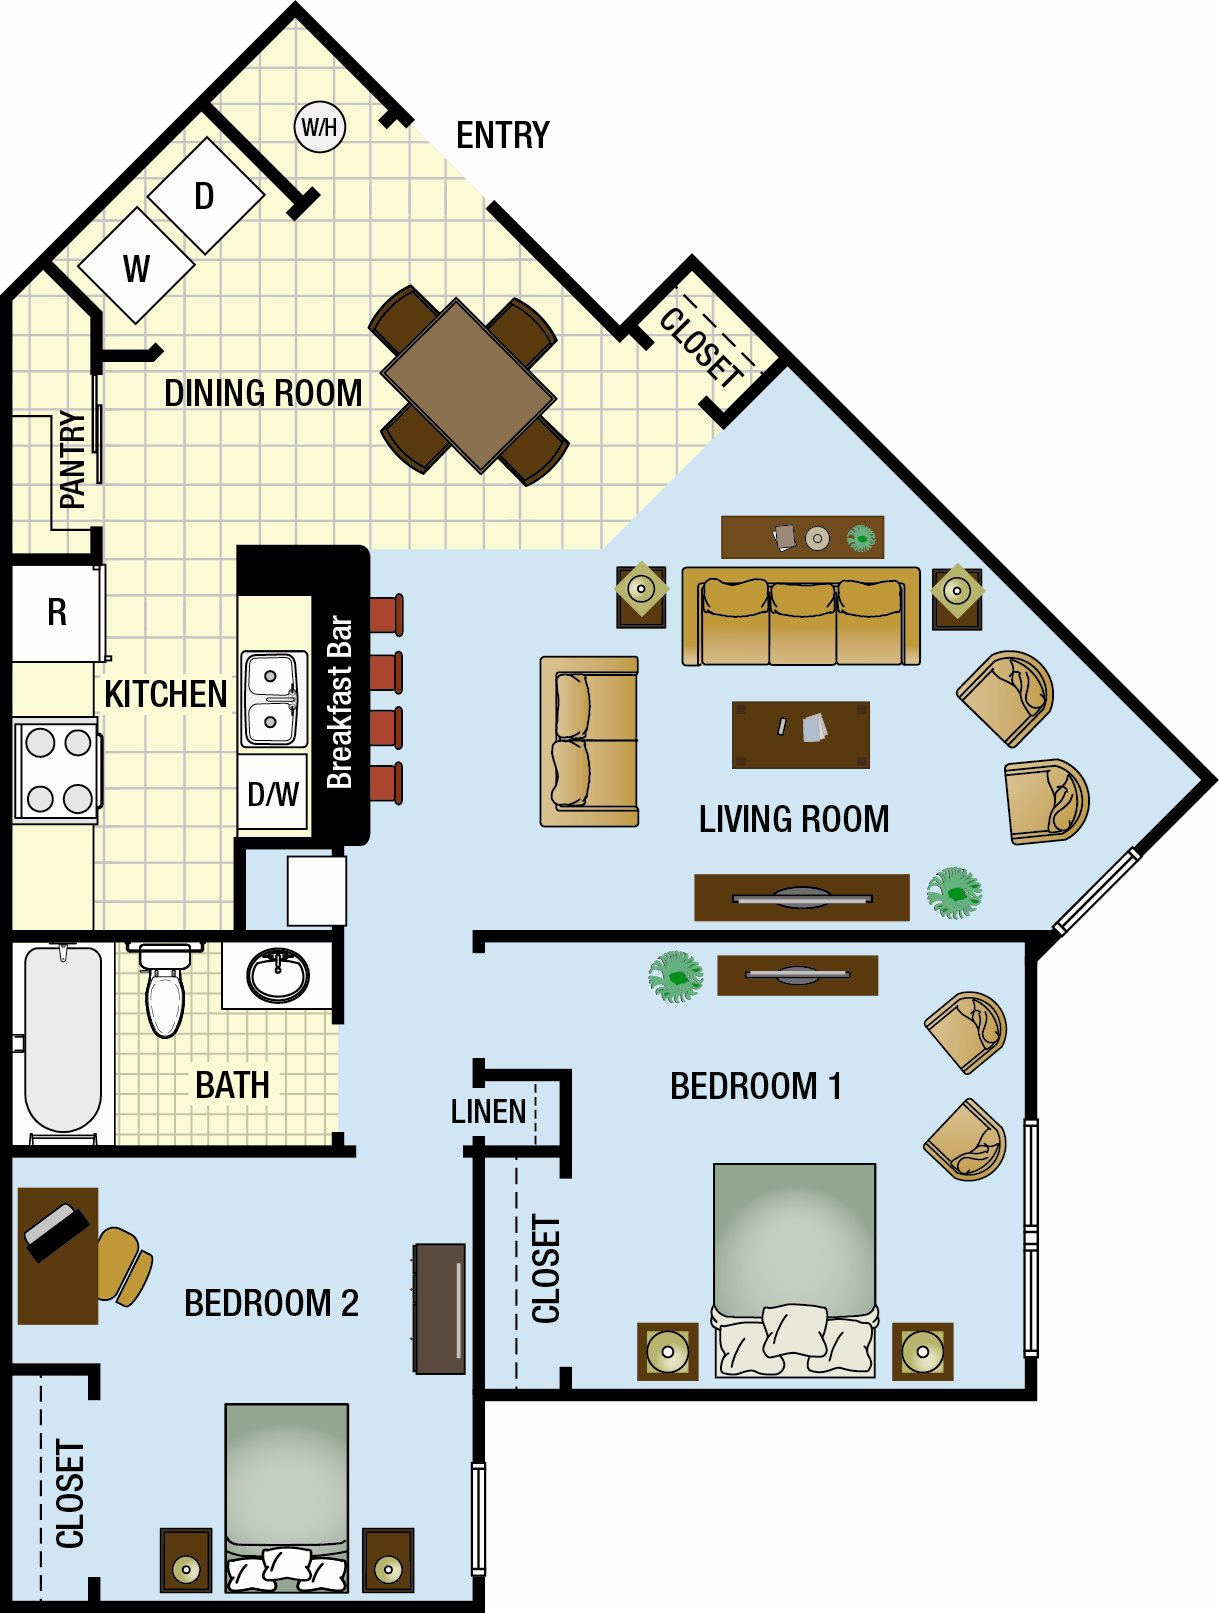 Rolling Green Apartments for rent in Sarasota, FL. Make this community your new home or visit other Concord Rents communities at ConcordRents.com. Two bedroom